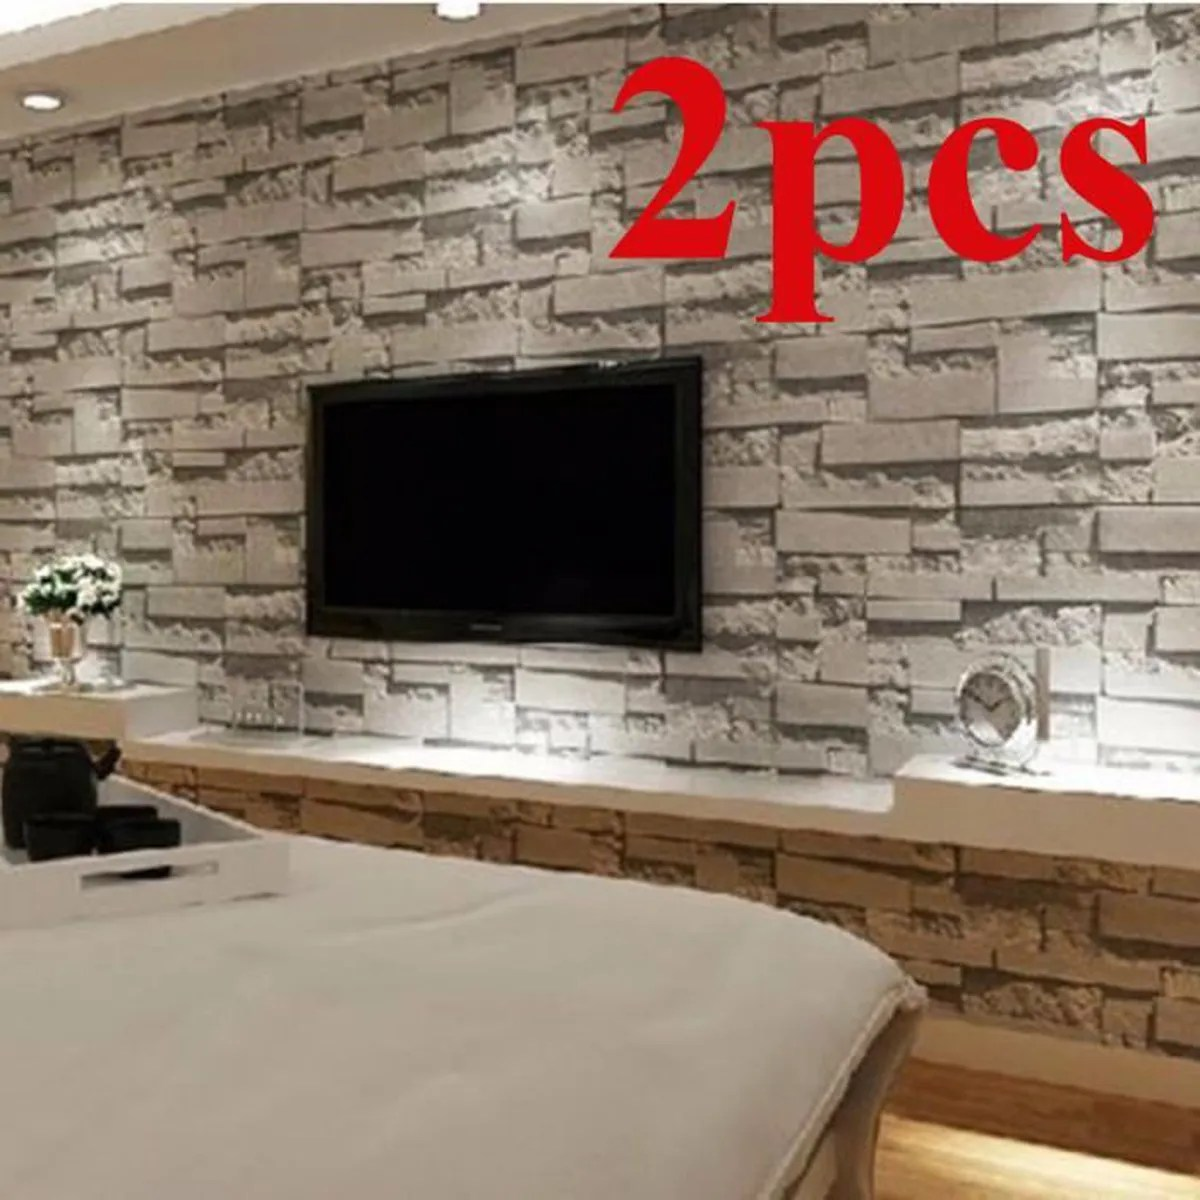 Tele Mur 2pcs 3d Brique Papier Peint Fond Tv Mur Wallpaper Decor Salon